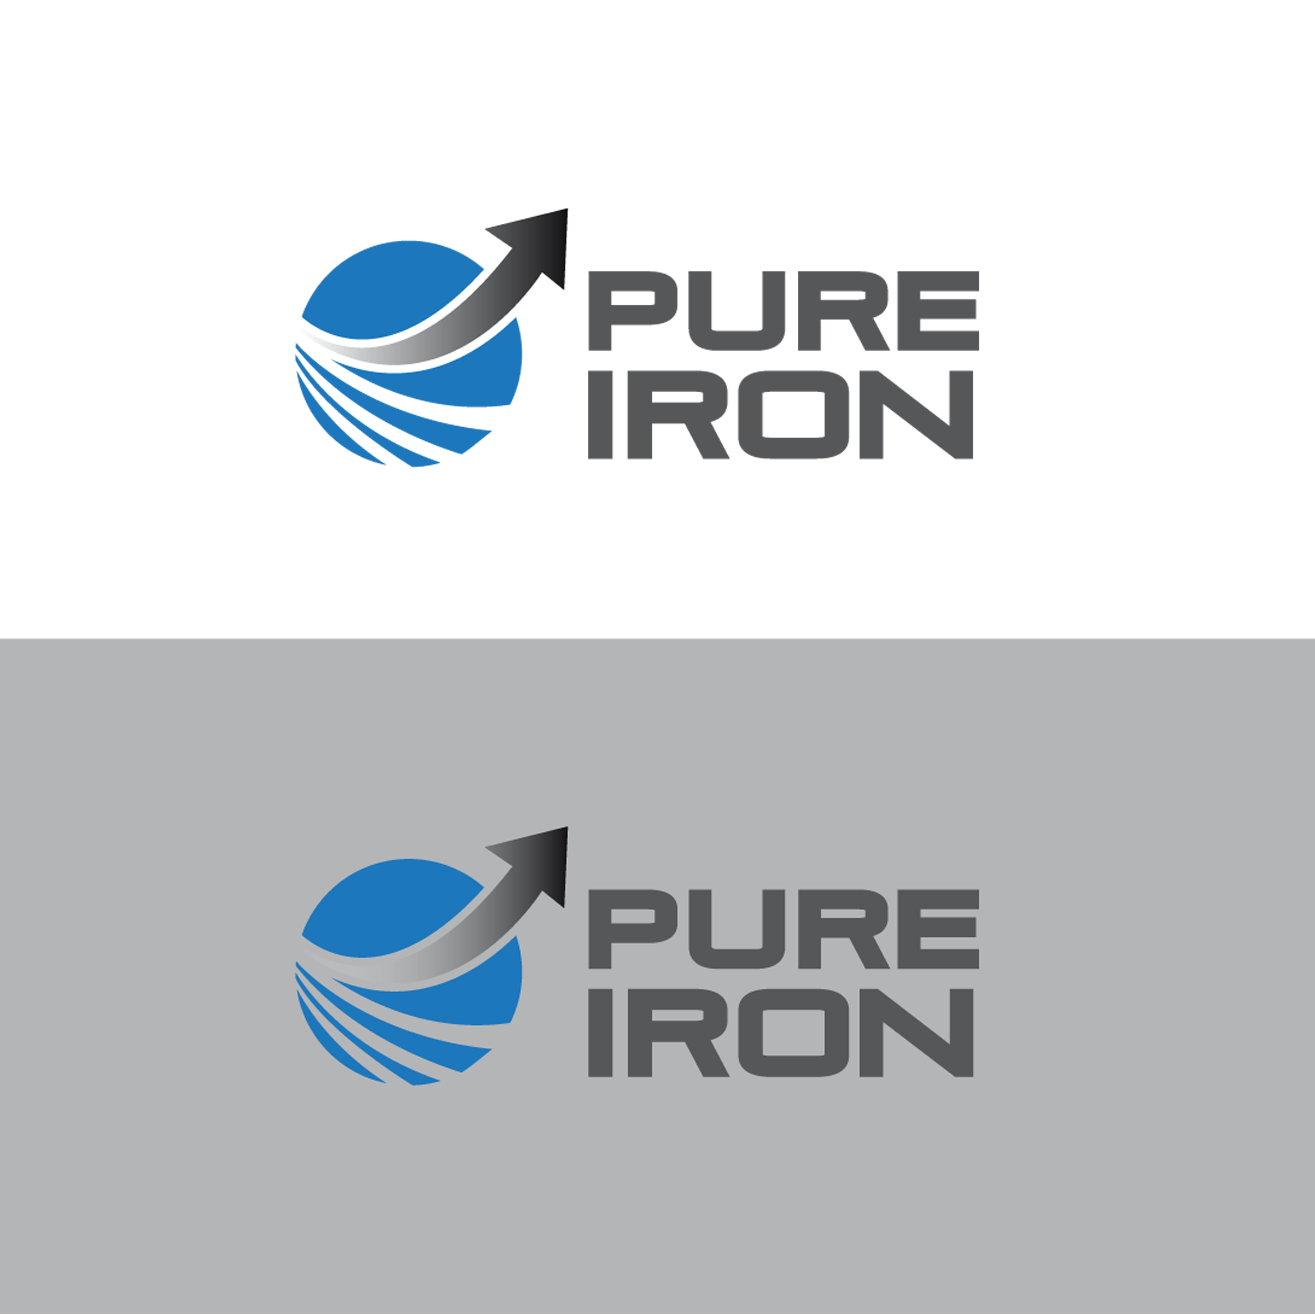 Logo Design by luna - Entry No. 87 in the Logo Design Contest Fun Logo Design for Pure Iron.